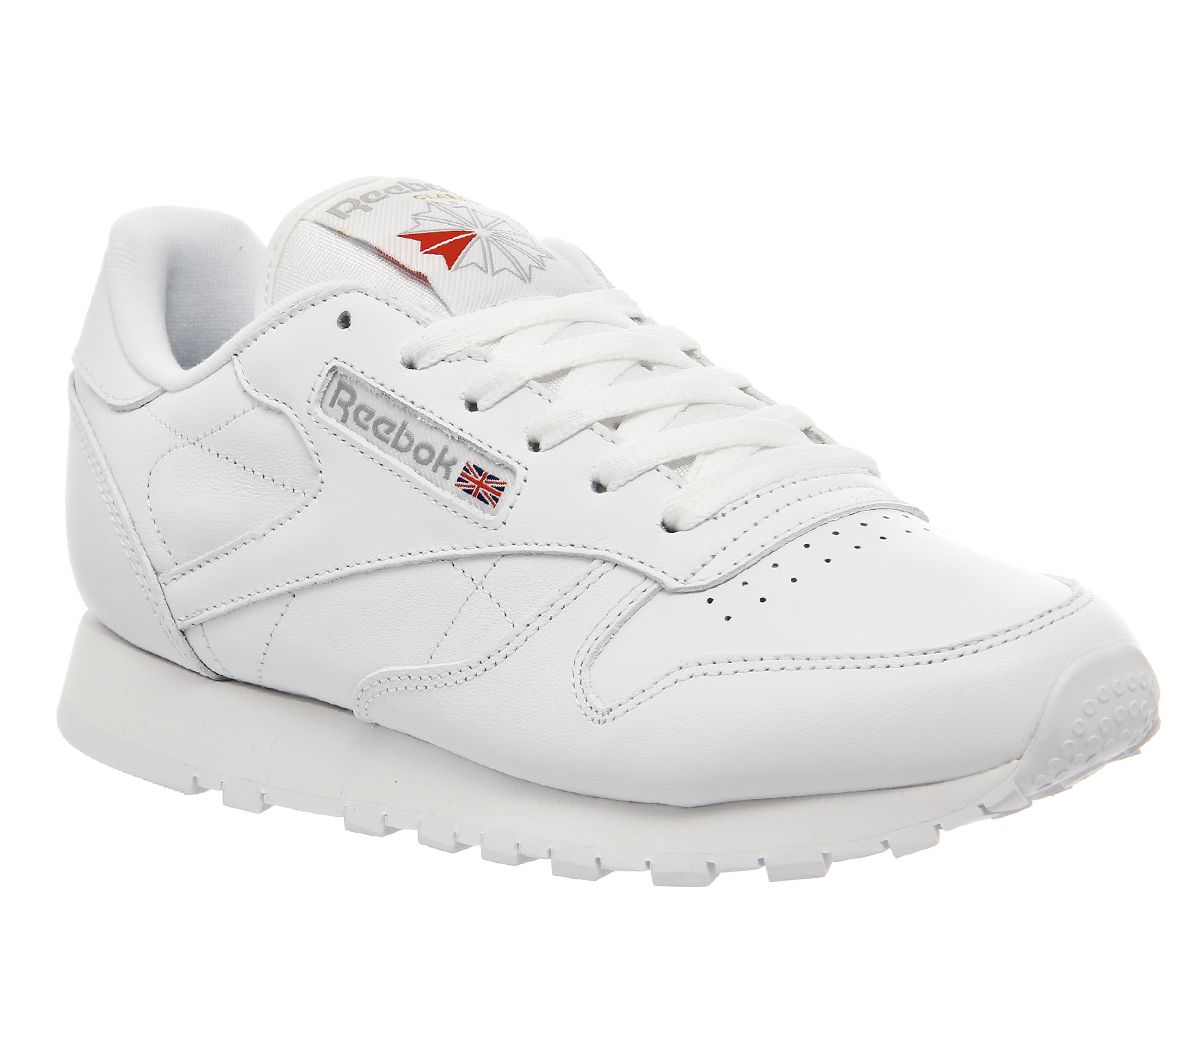 2cc762f3fdb09 Reebok Classic Leather Trainers White Leather - Office Girl